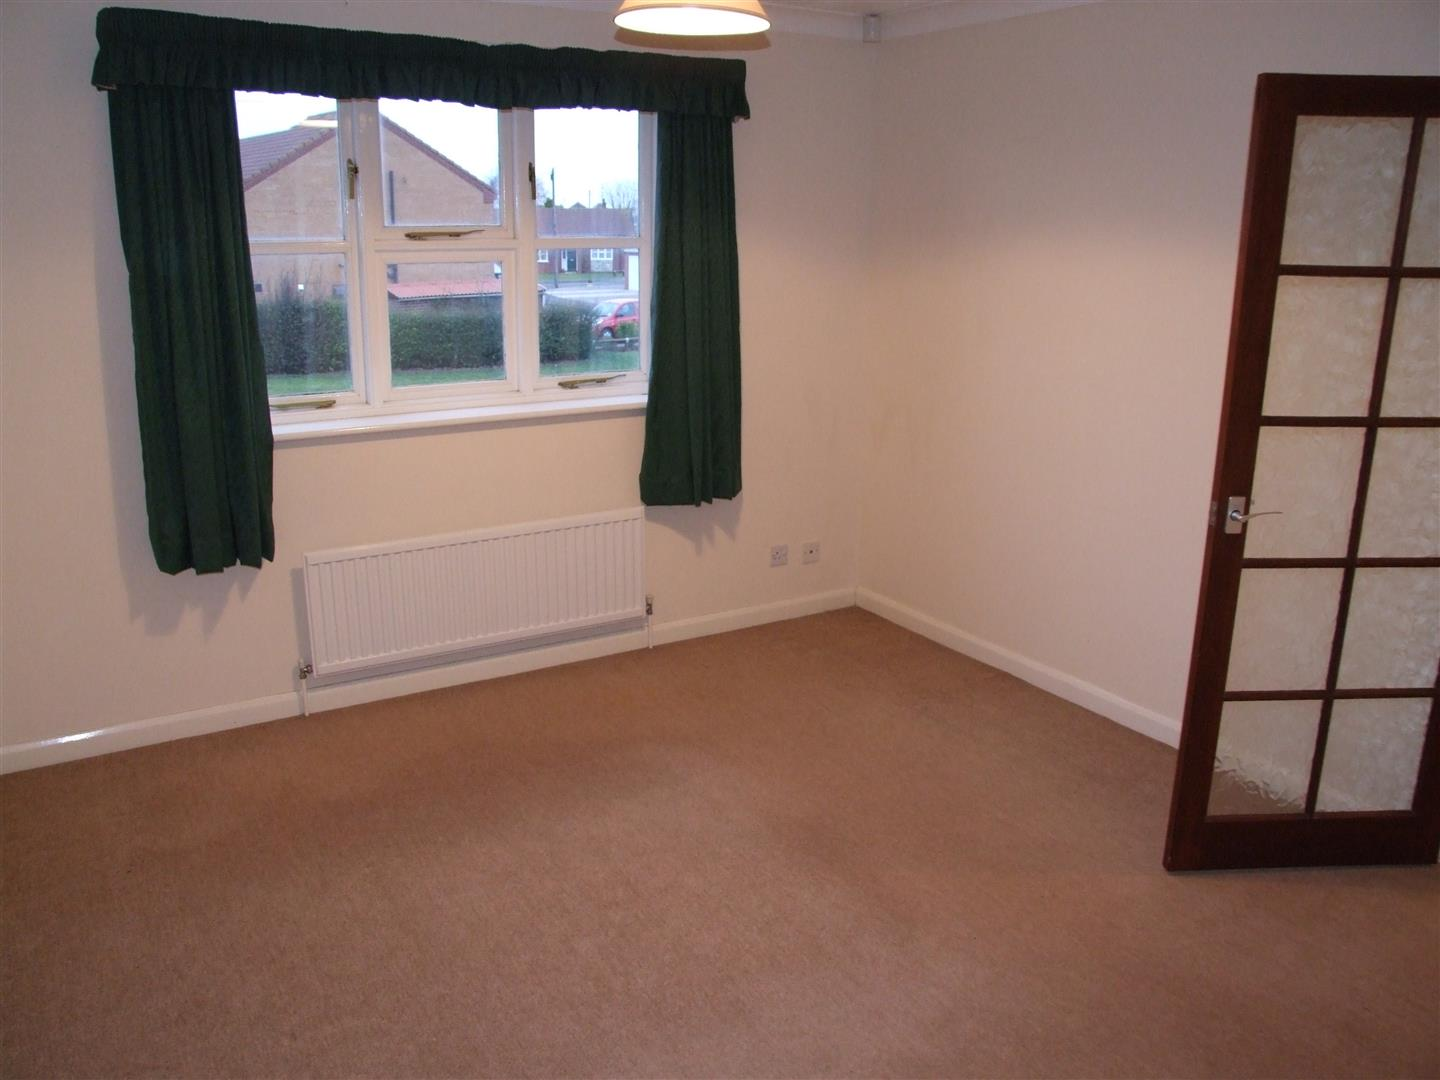 1 bed house to rent in Long Sutton Spalding, PE12 9RR  - Property Image 3